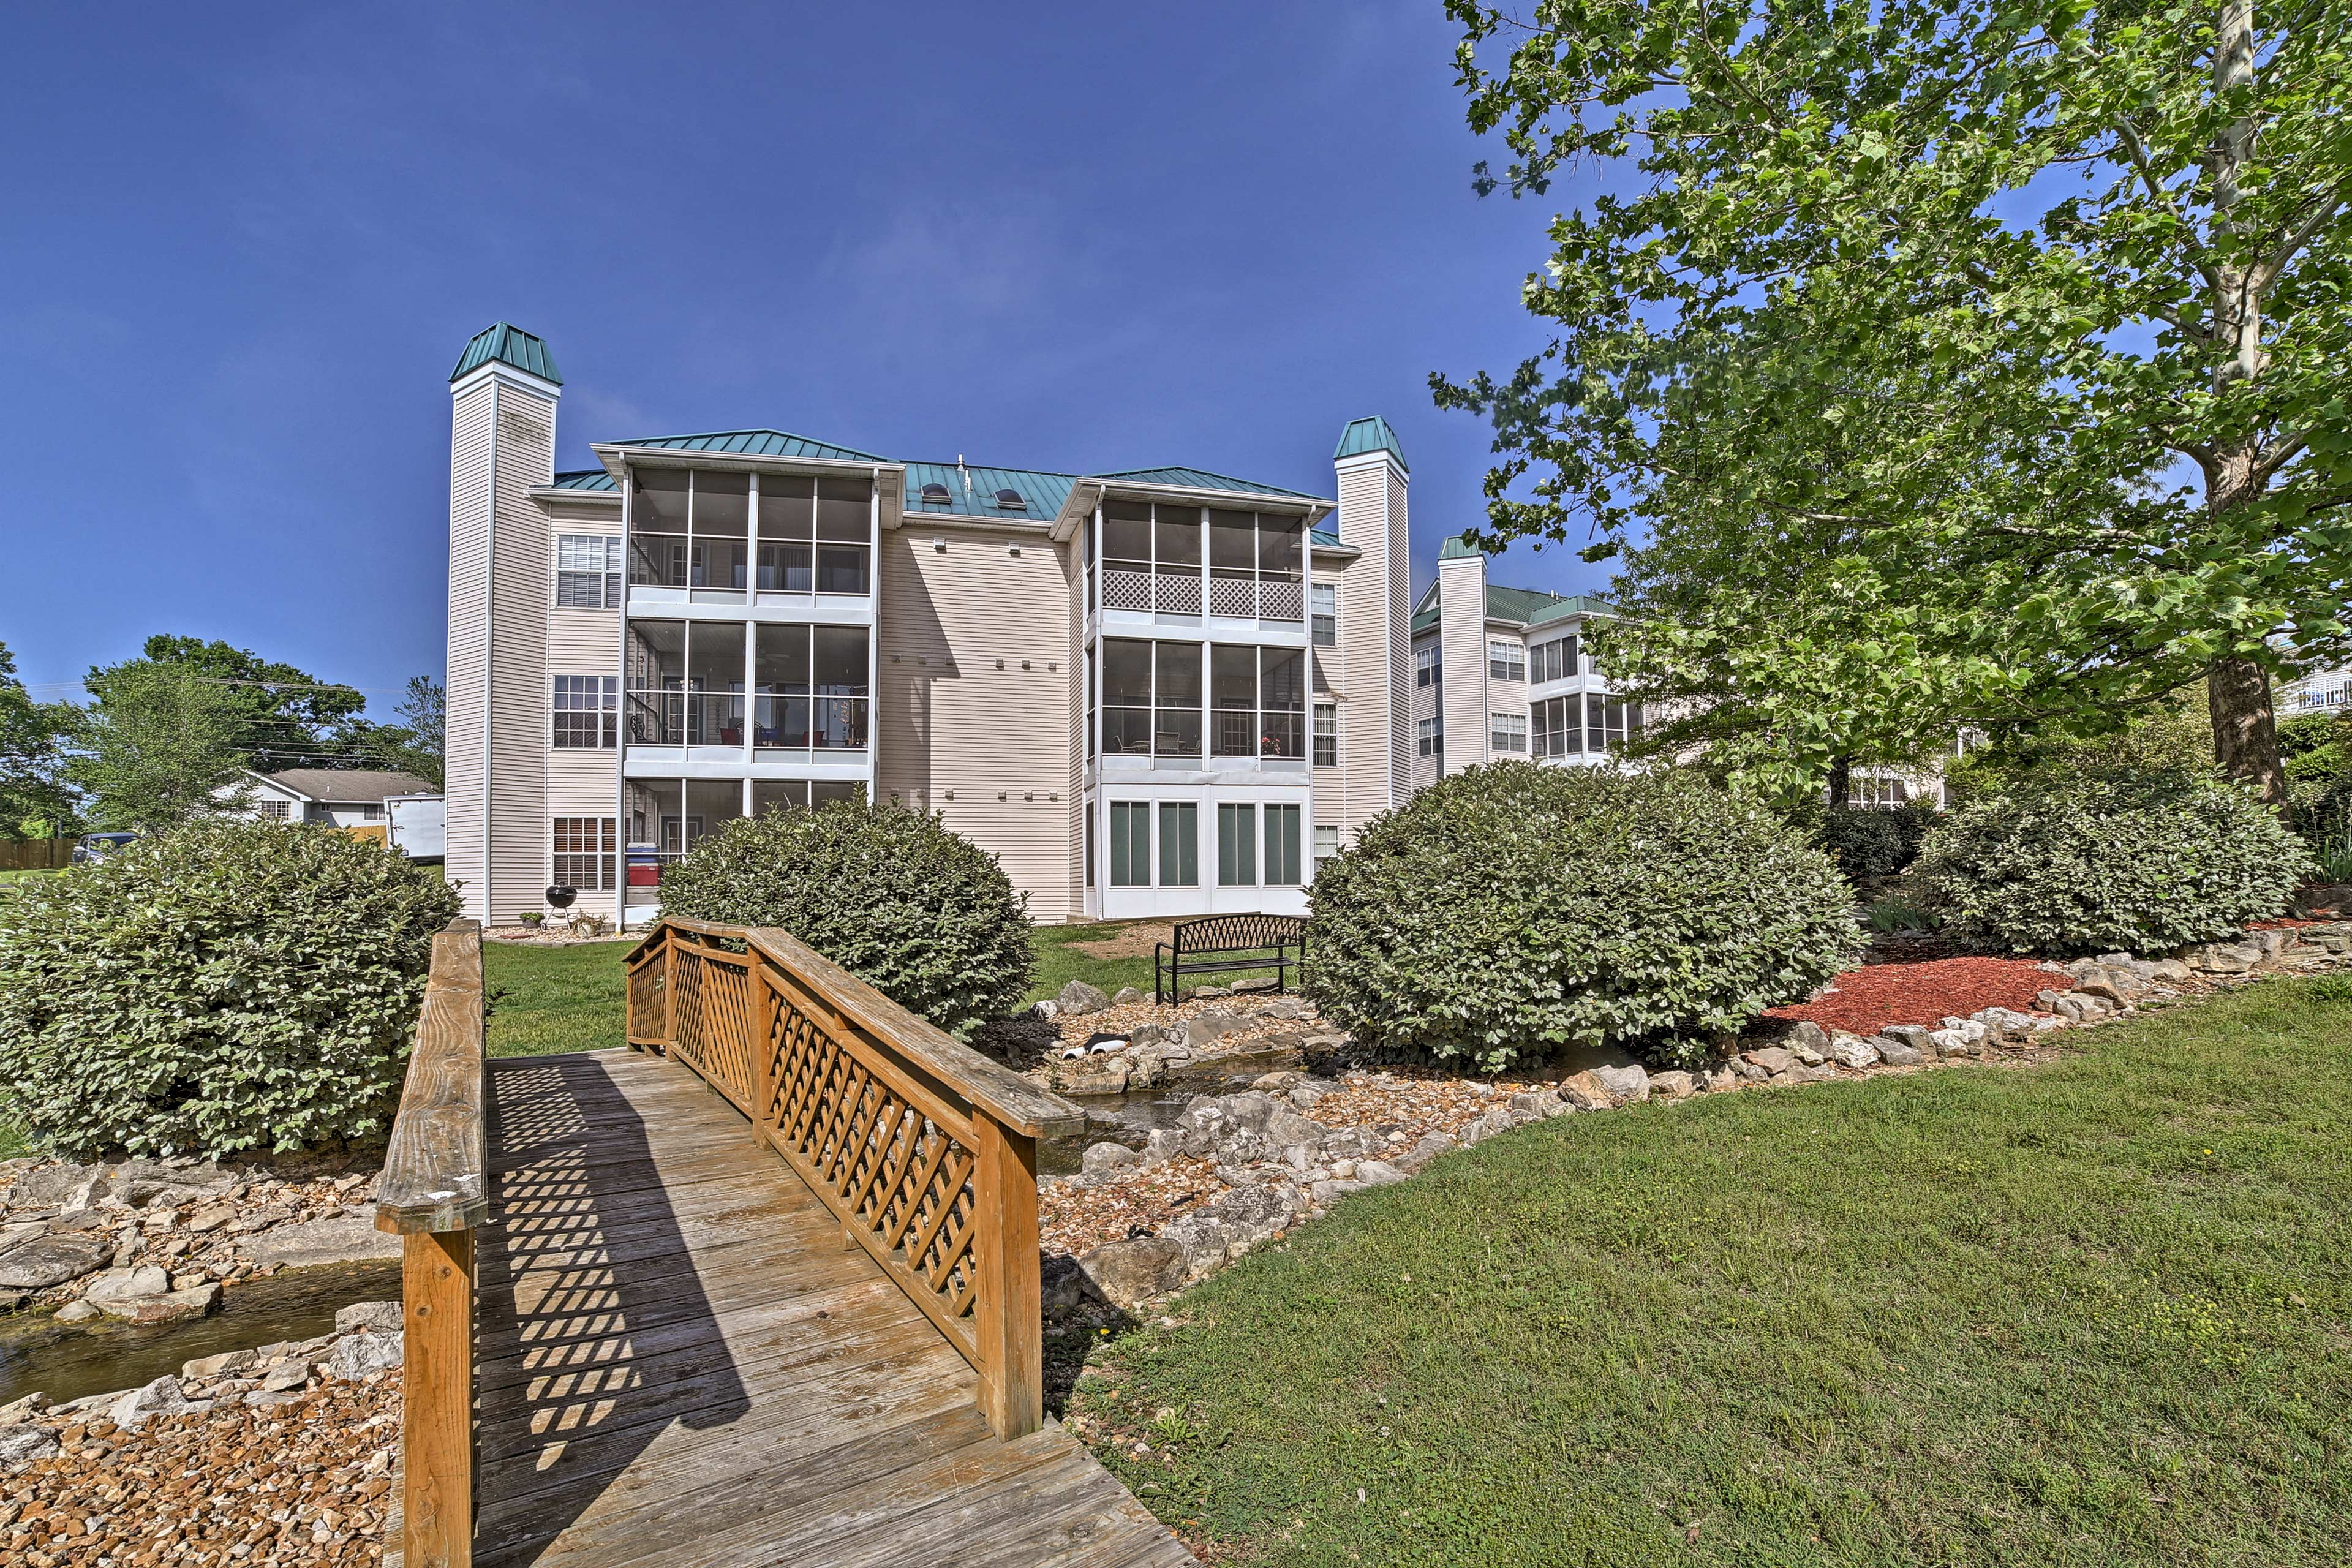 Minutes from Table Rock Lake, this condo is 5-star.